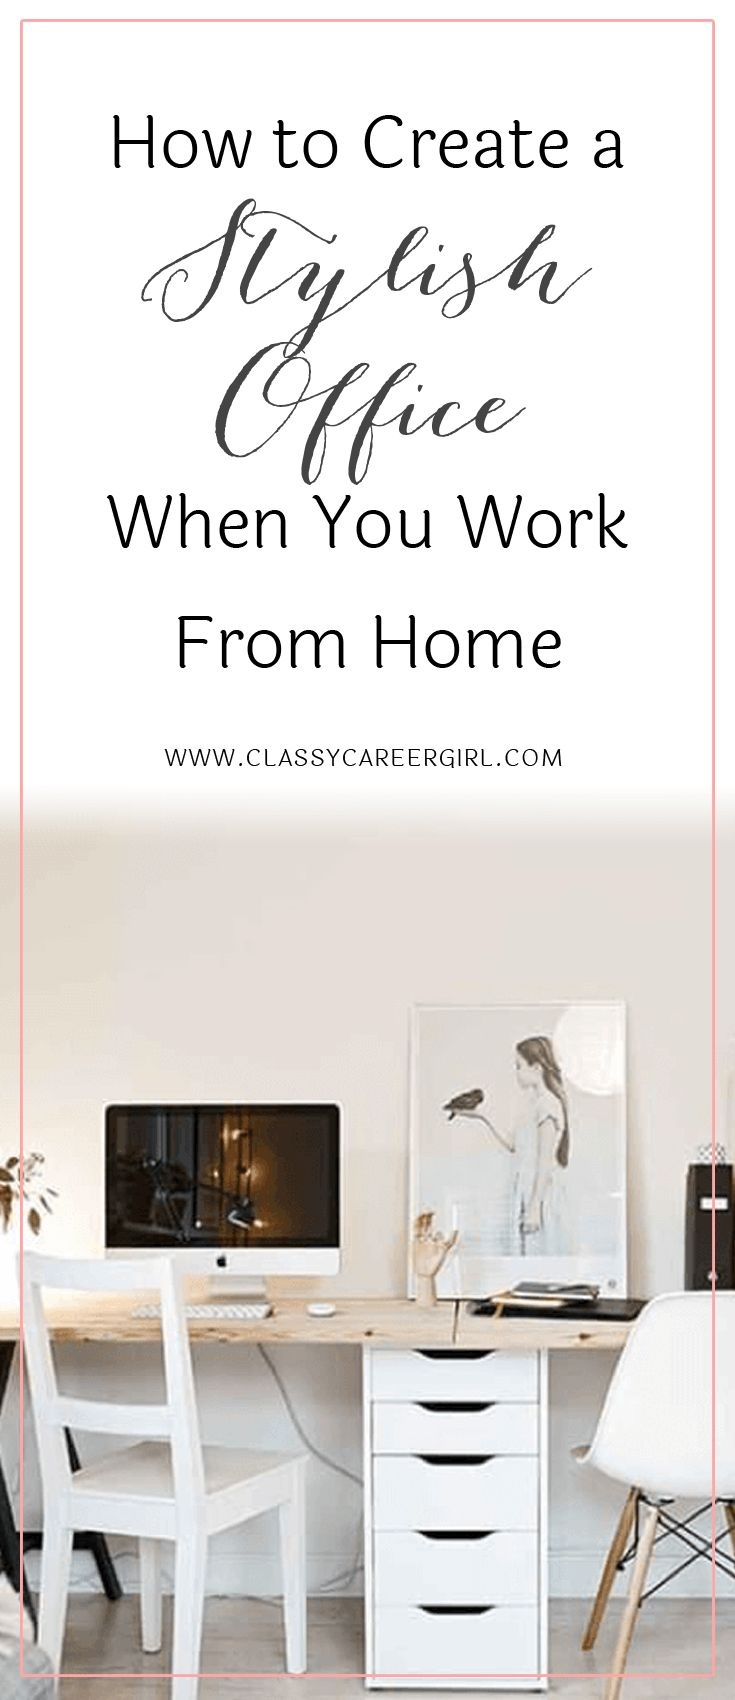 How to Create a Stylish Office When You Work From Home << Classy Career Girl